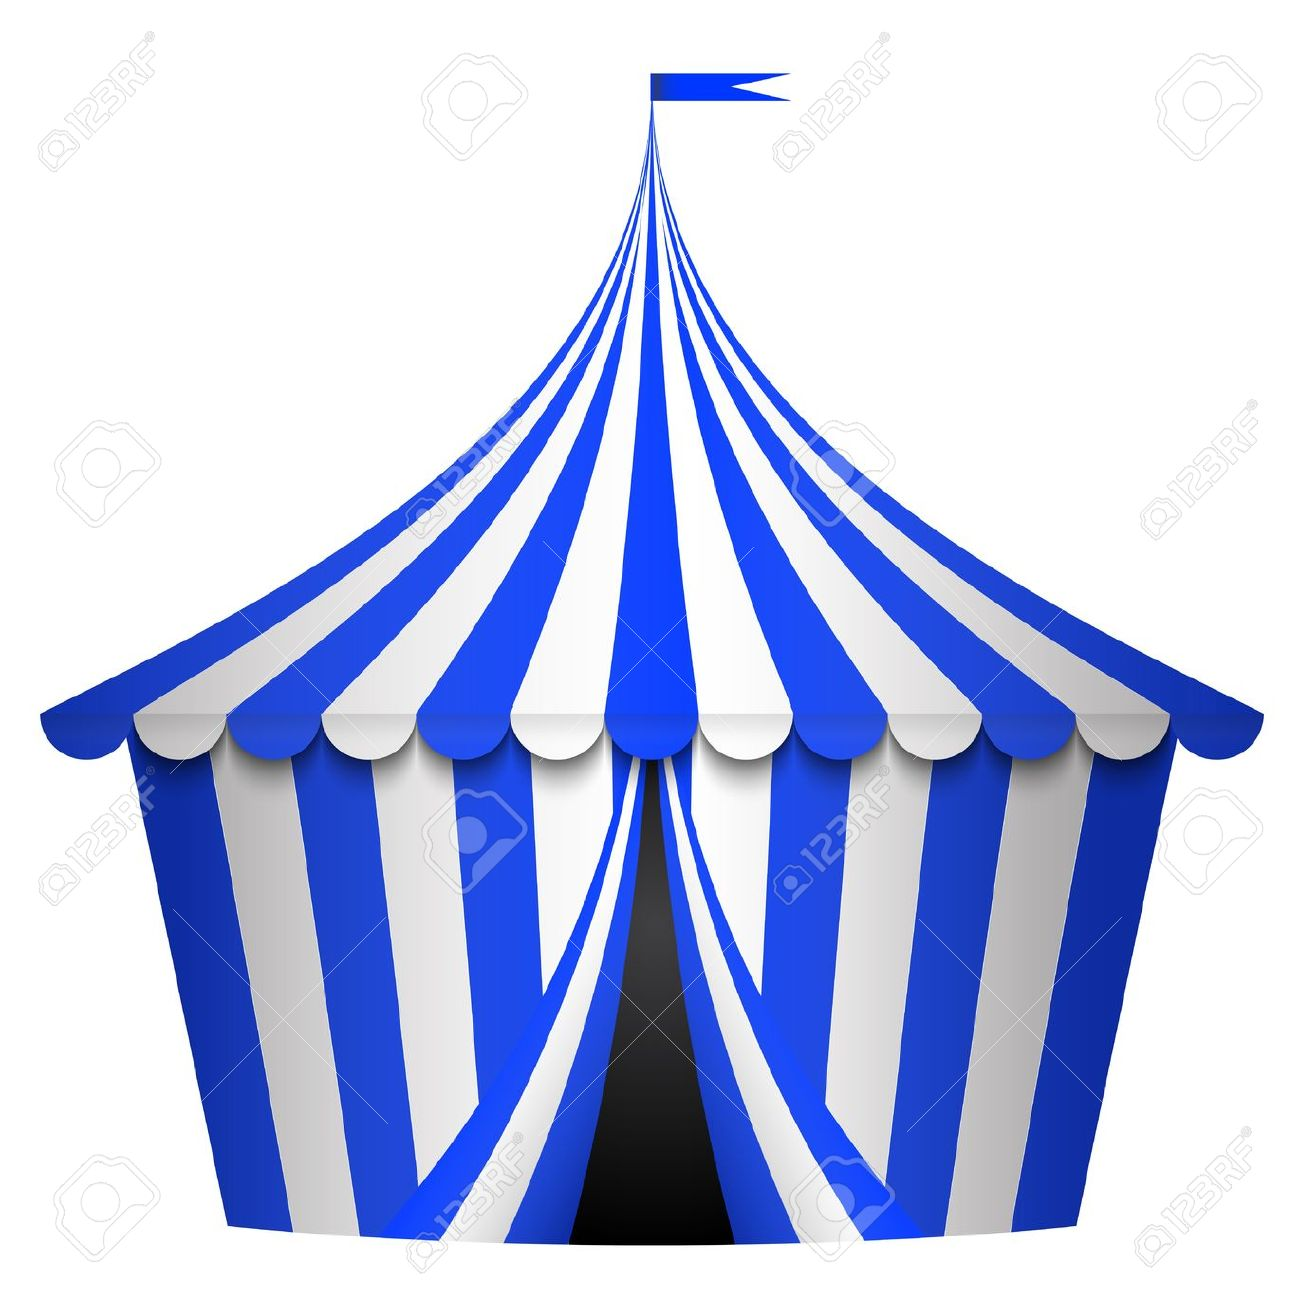 25,356 Tents Stock Vector Illustration And Royalty Free Tents Clipart.